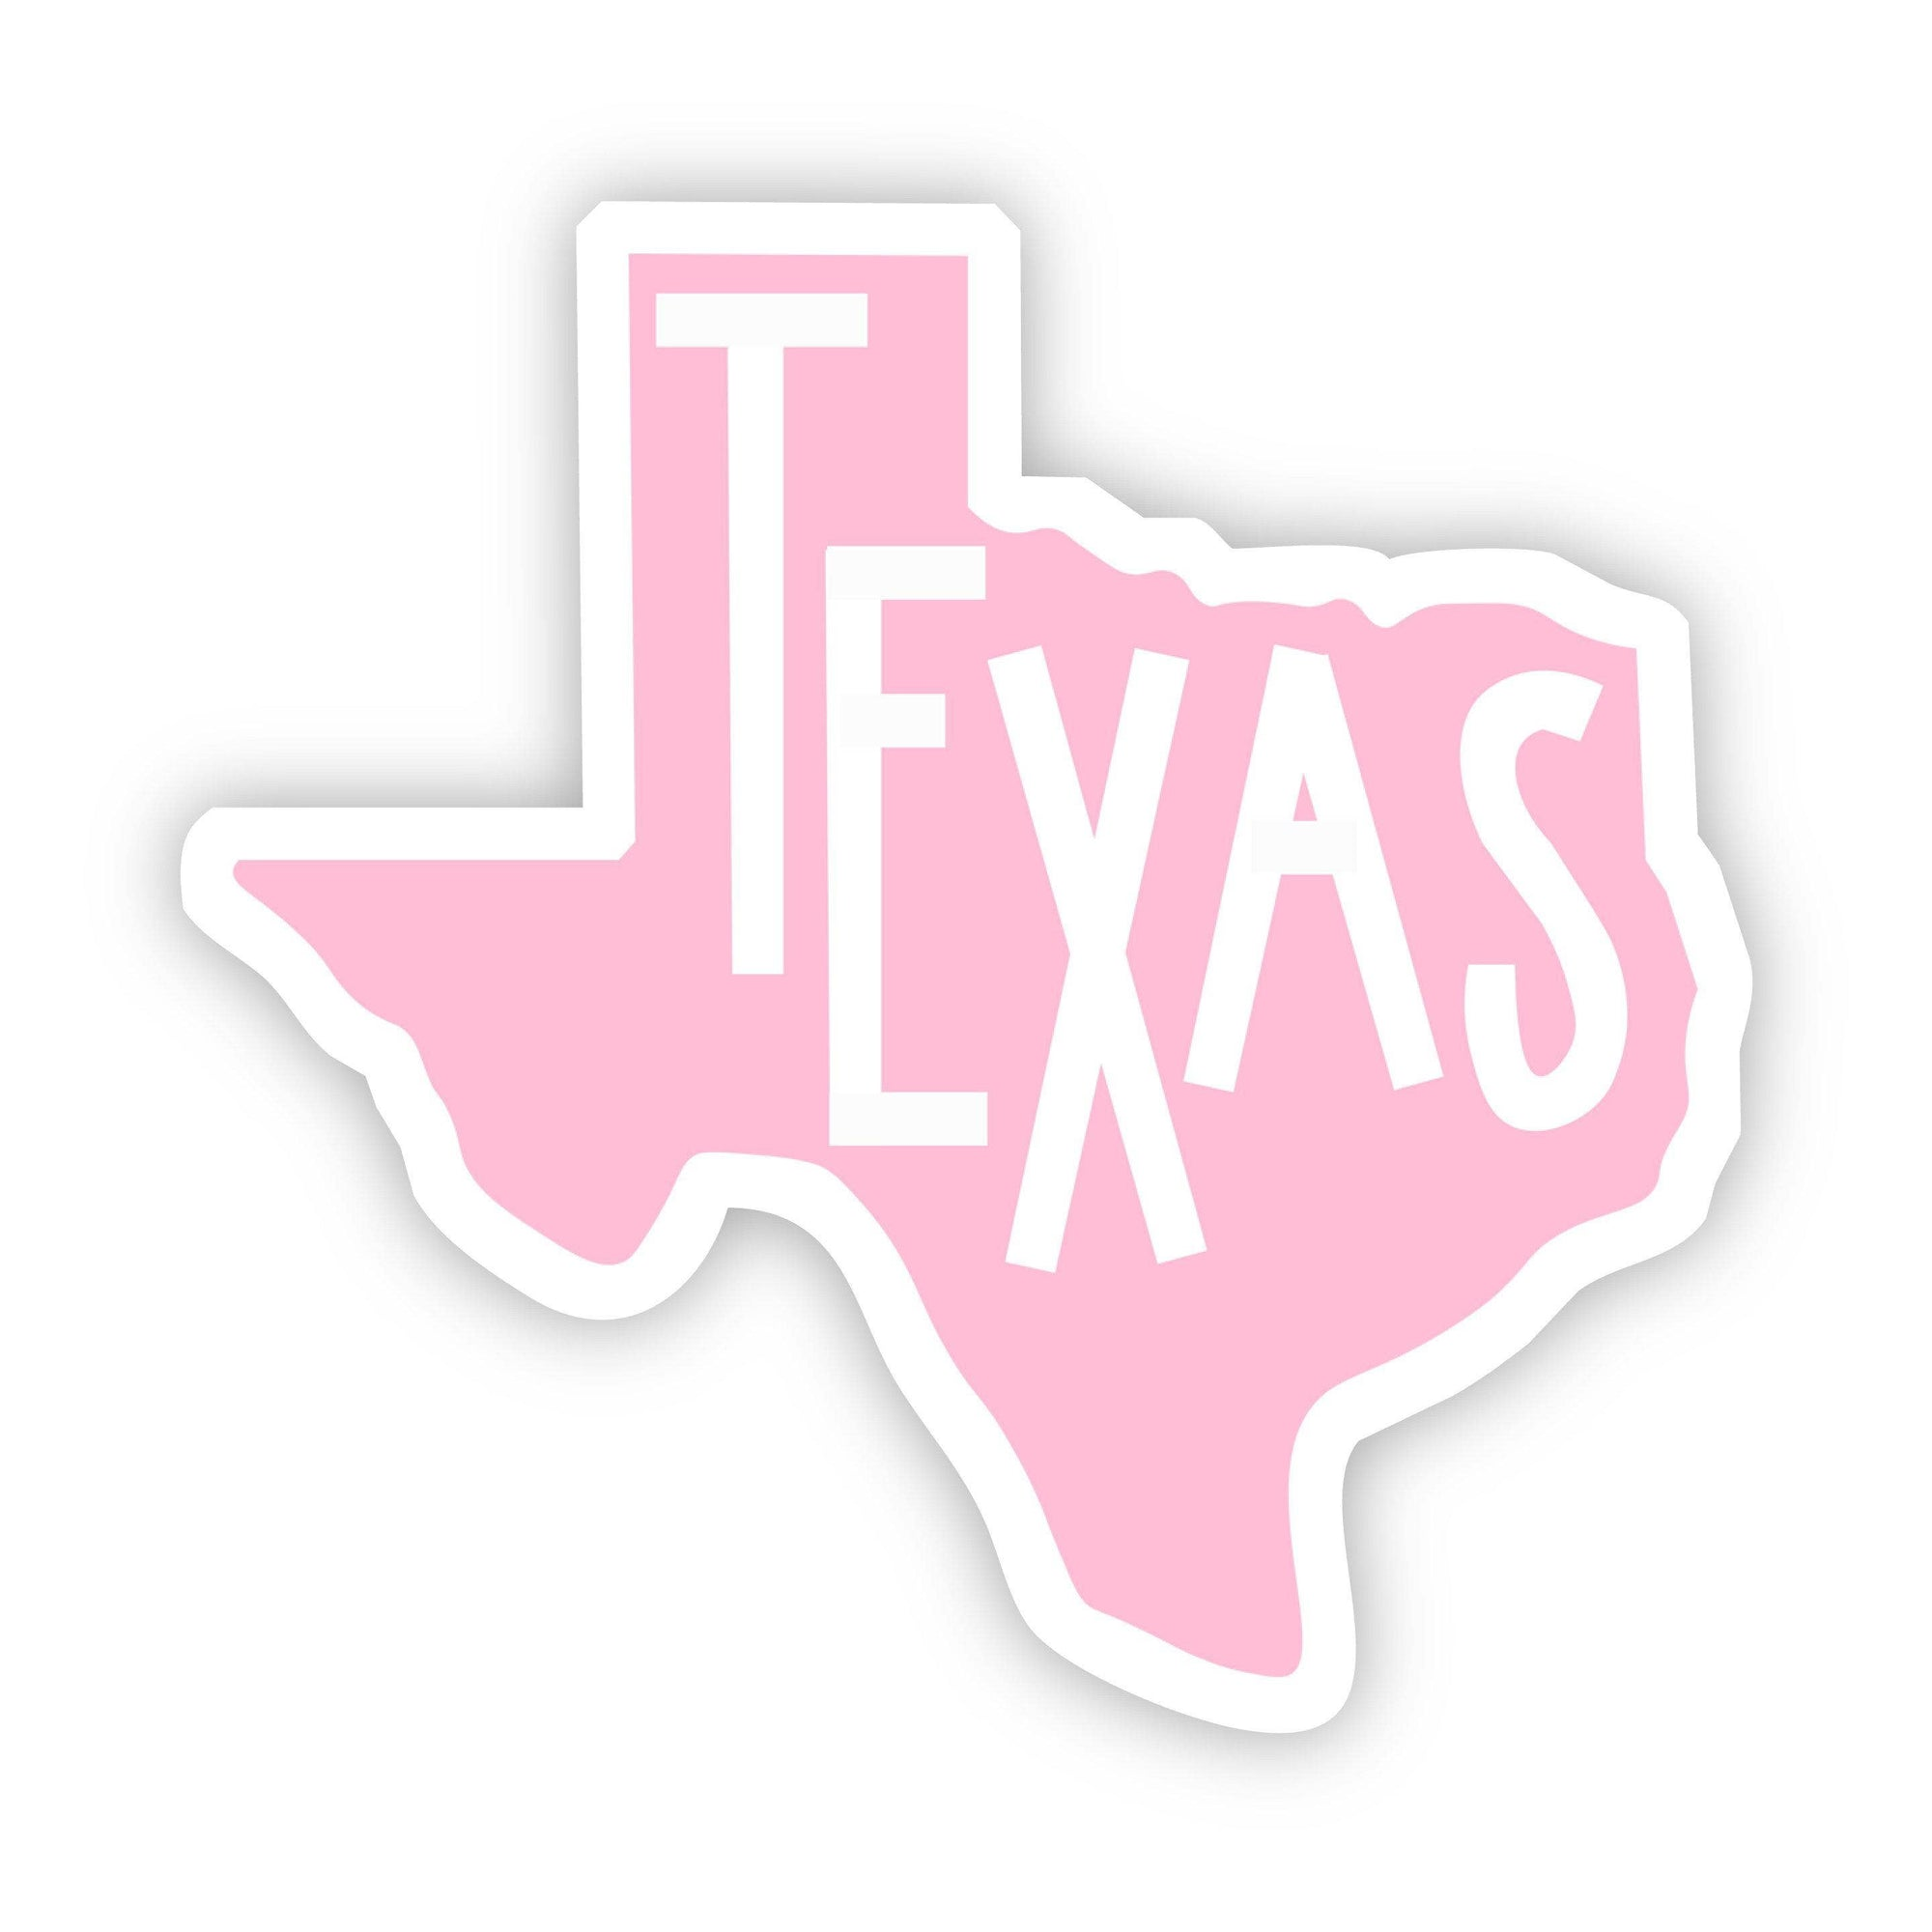 Big Moods - Texas Pink Sticker